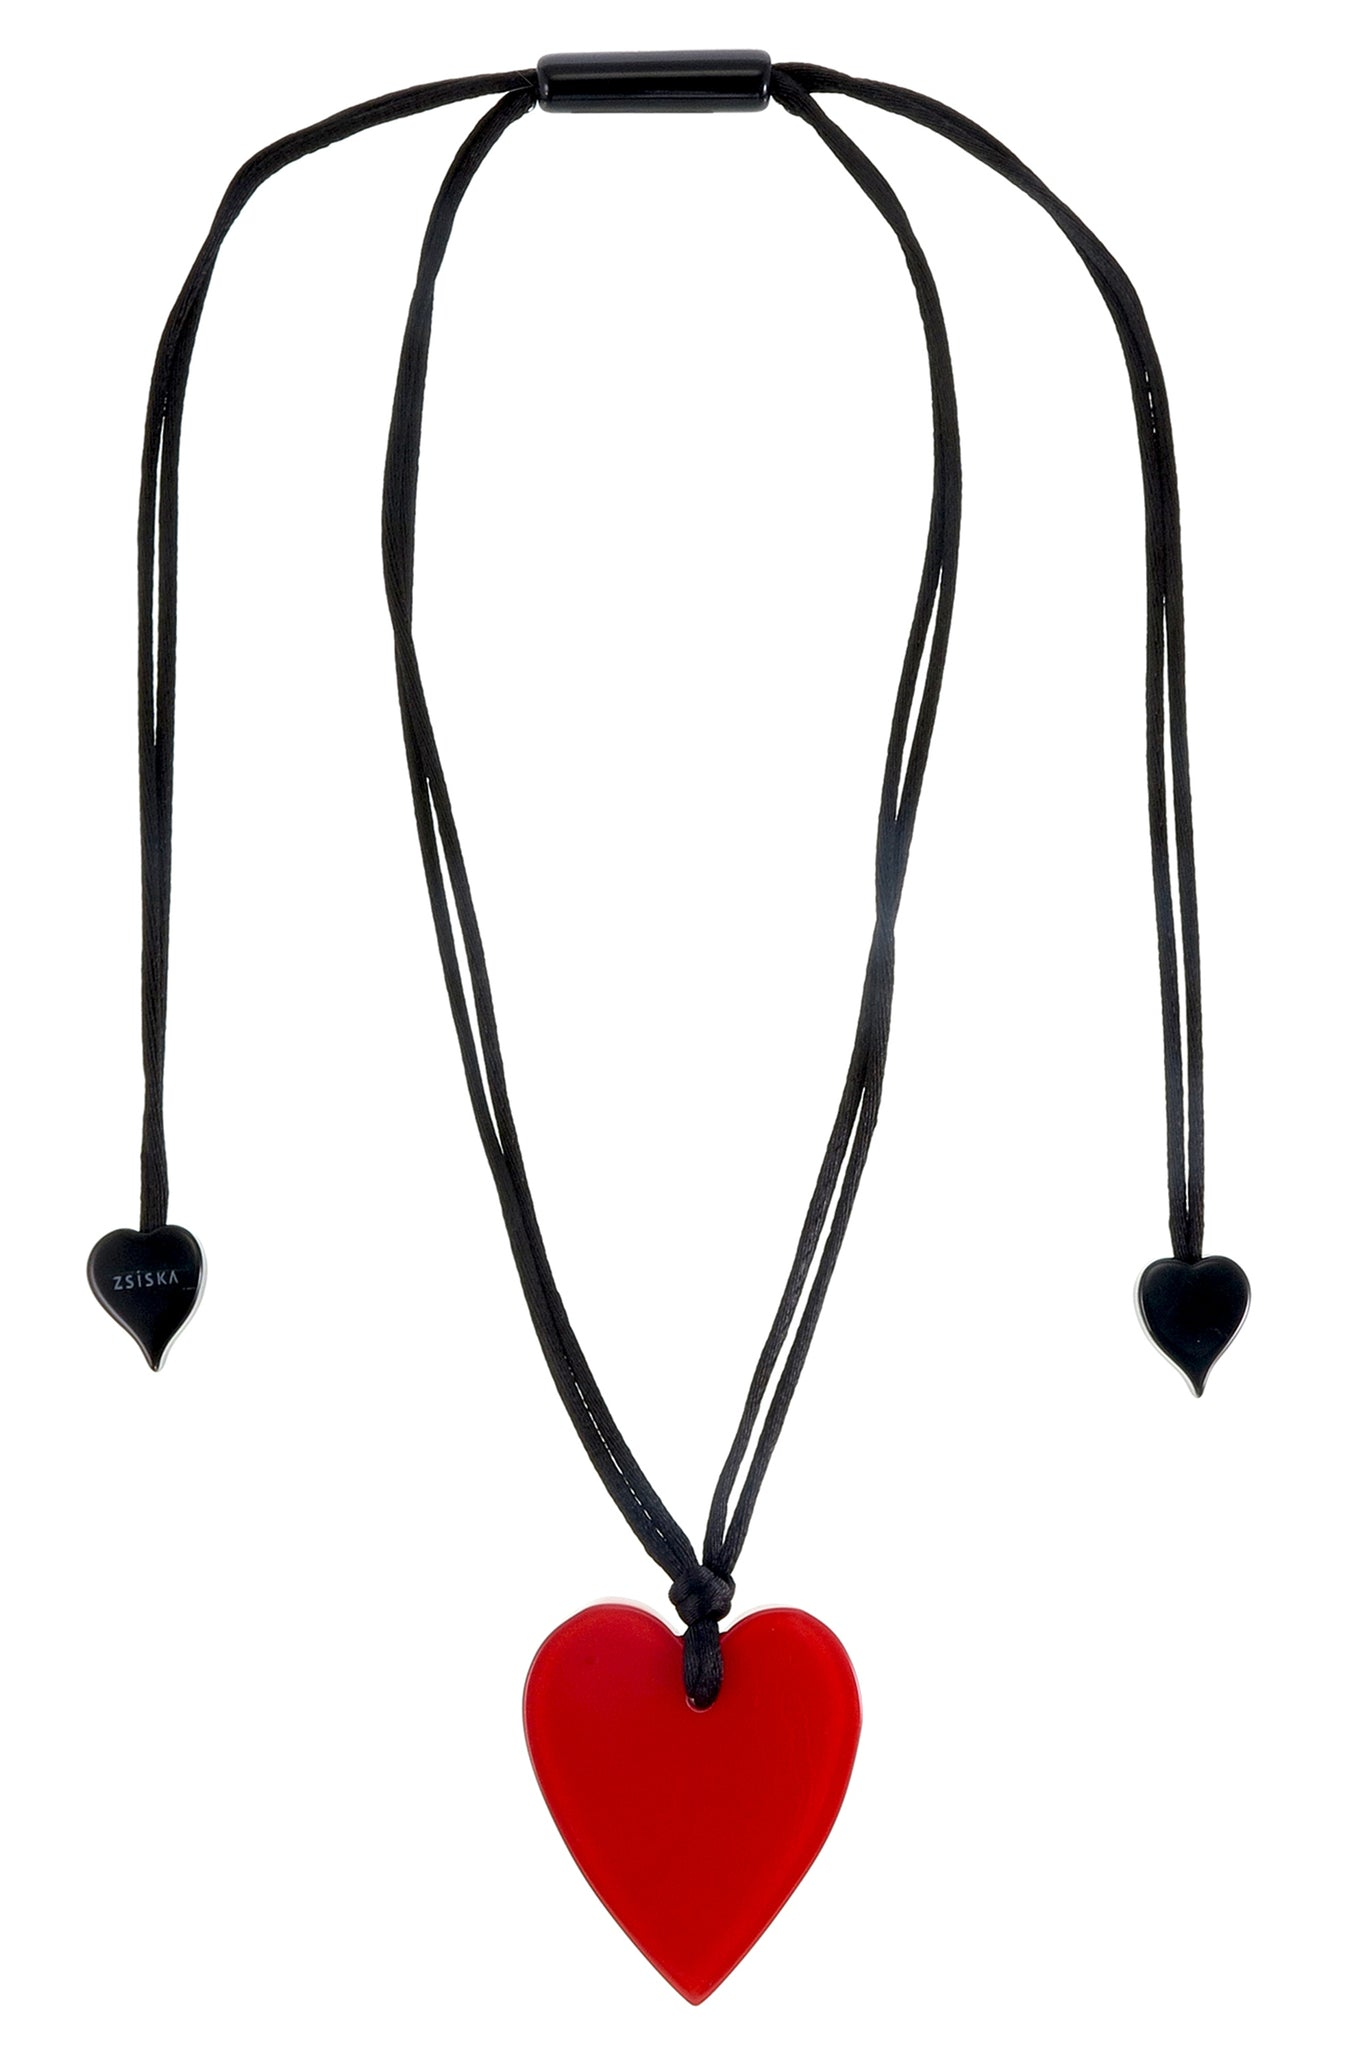 Zsiska | Handmade Small Heart Necklace - NEW ARRIVAL